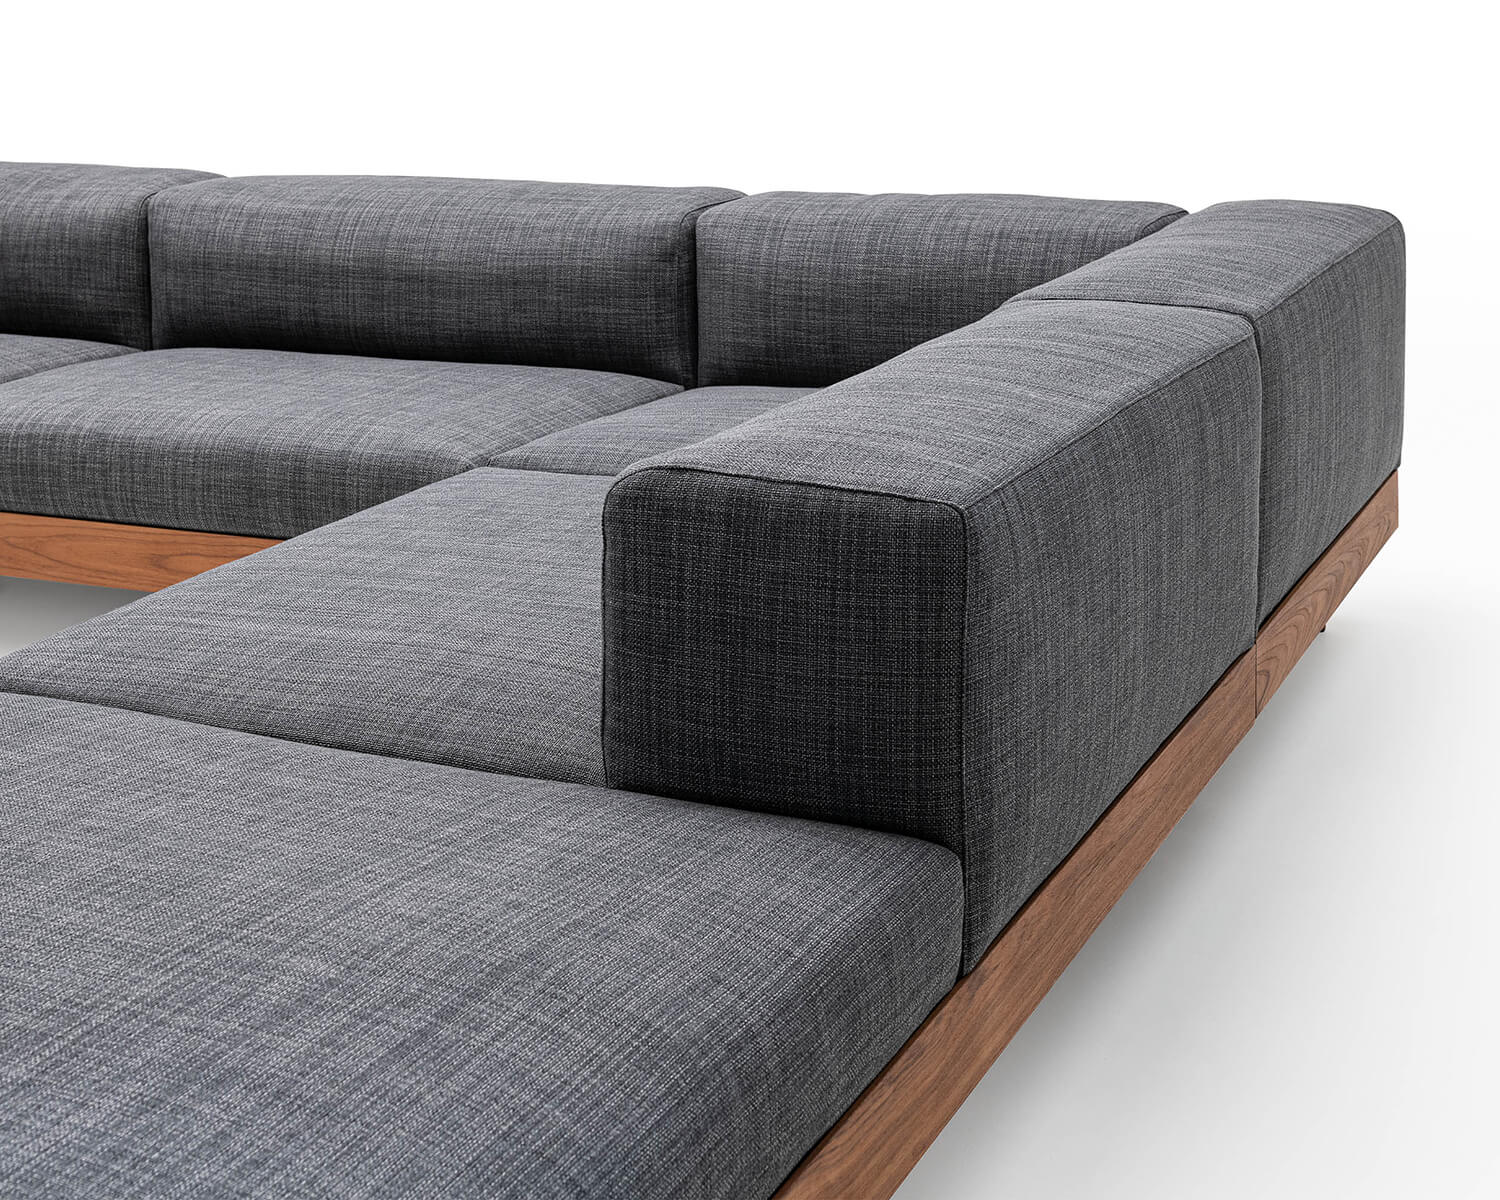 Close-up view of Kasbah modular sectional chaise in grey fabric